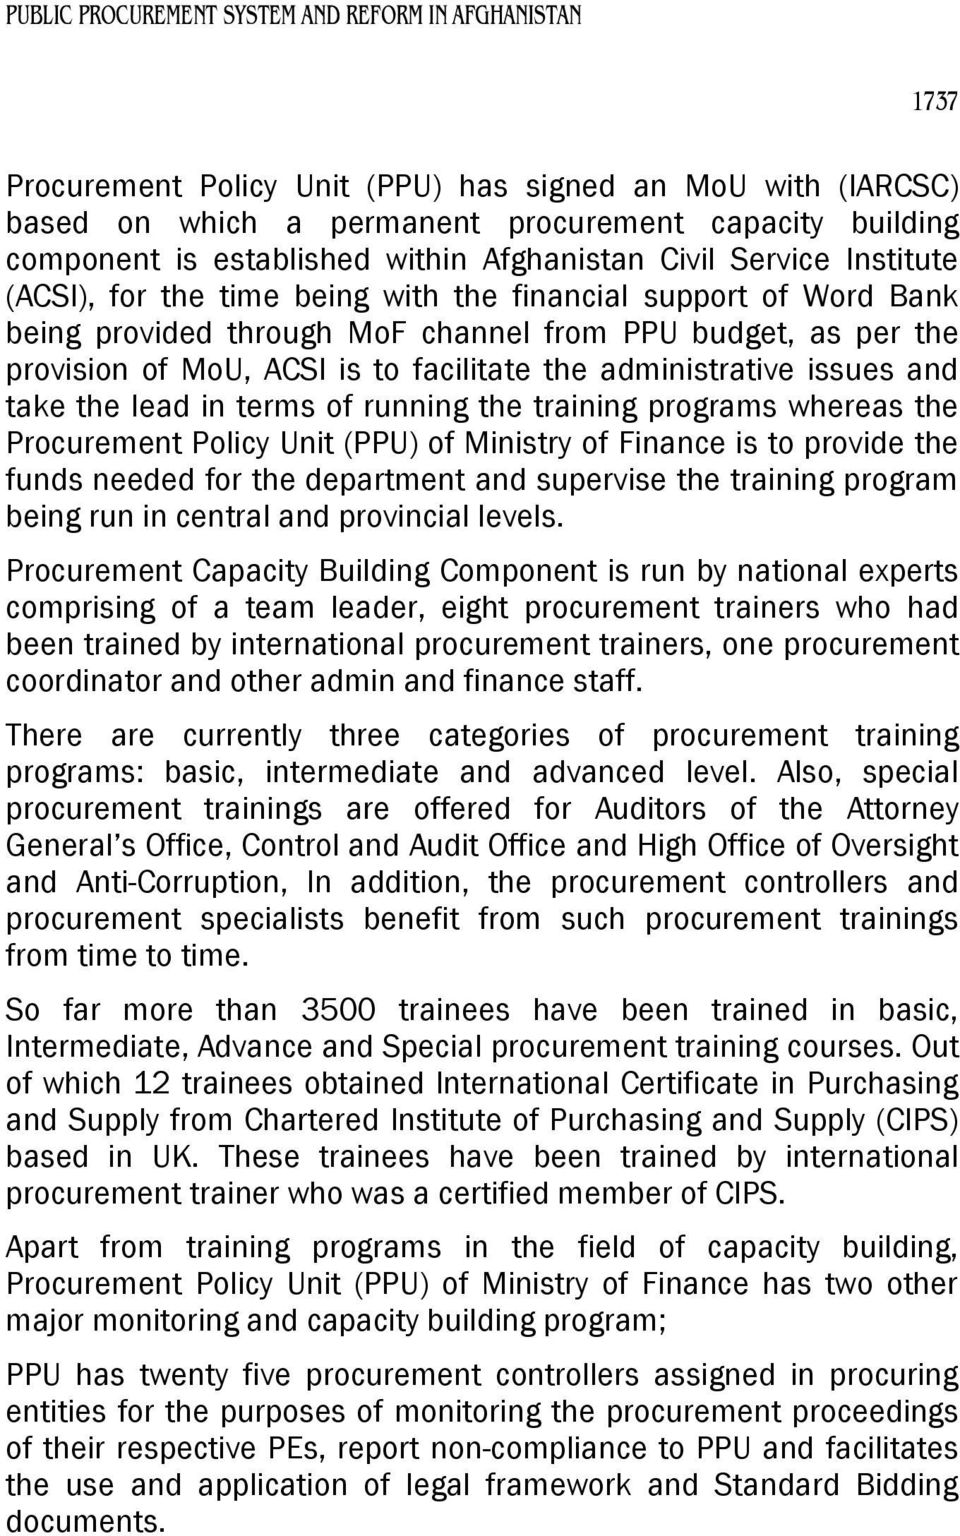 the lead in terms of running the training programs whereas the Procurement Policy Unit (PPU) of Ministry of Finance is to provide the funds needed for the department and supervise the training